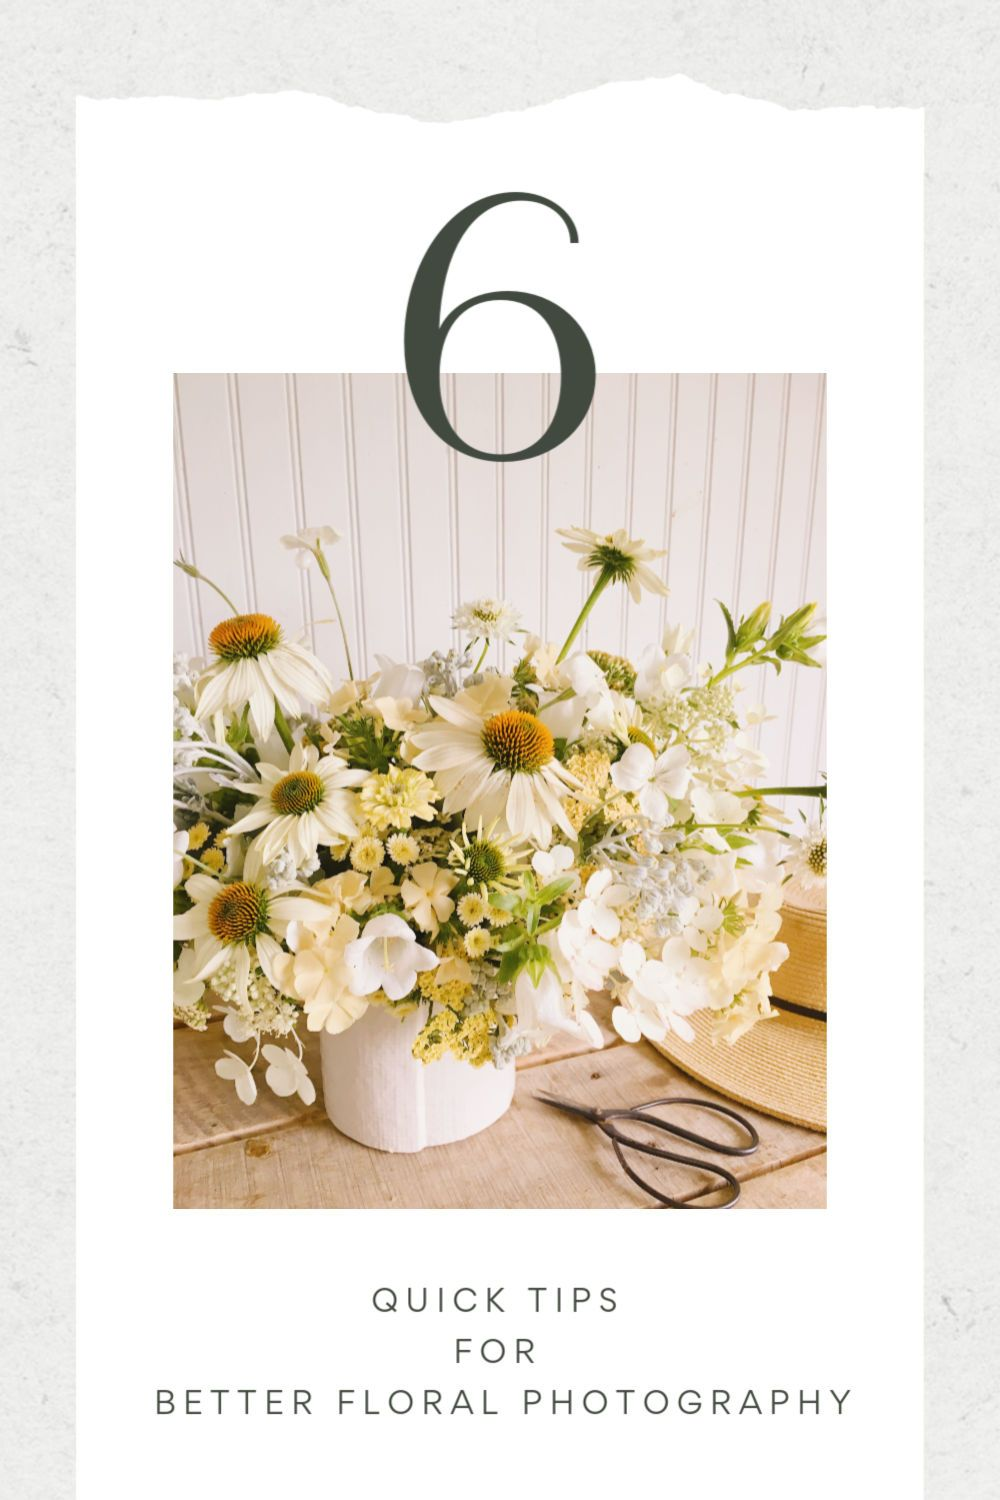 Course News Sign Up Jennie Love In 2020 Floral Photography Florist School Florist